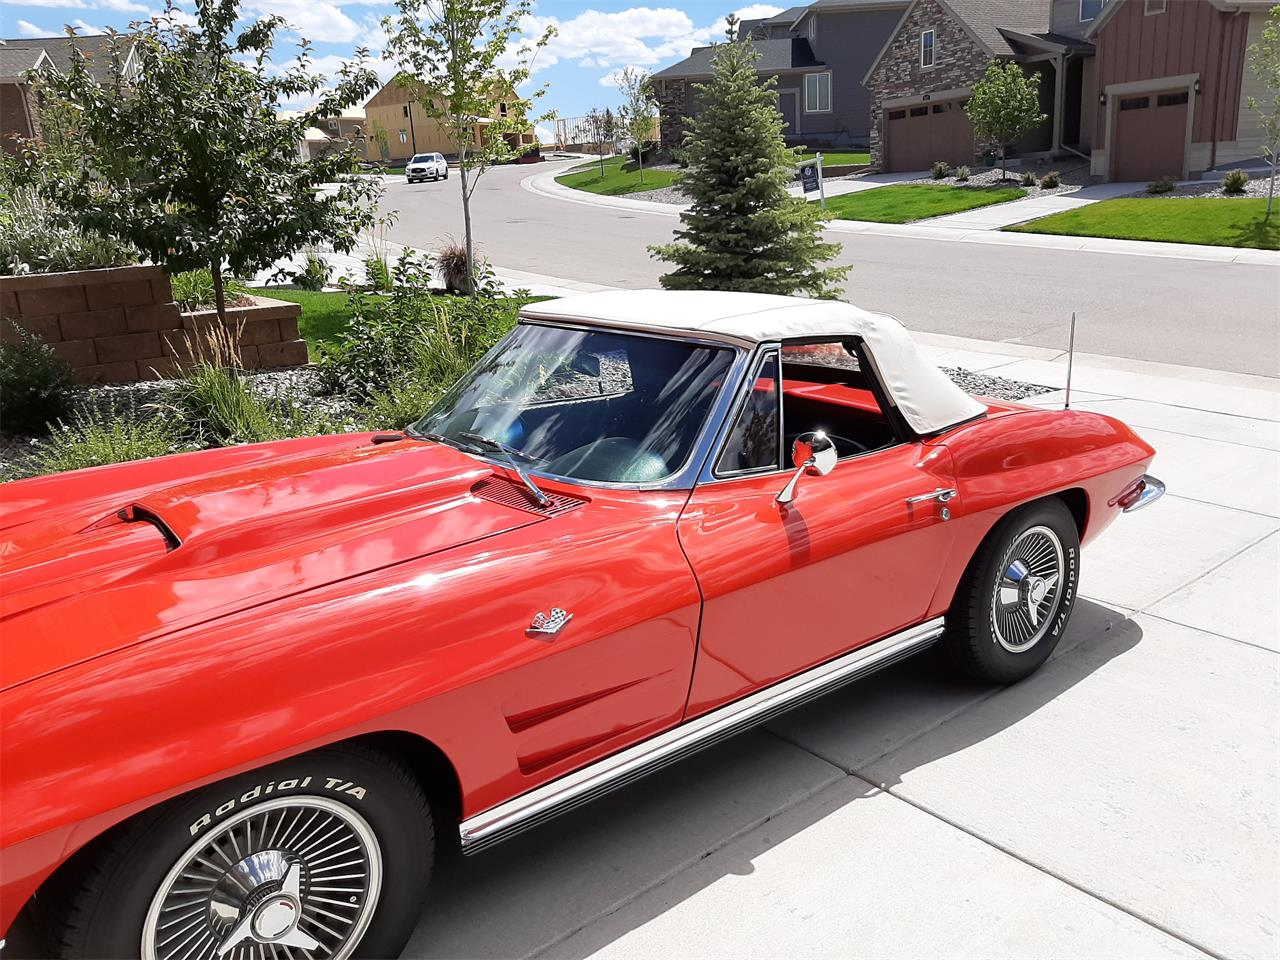 1964 Chevrolet Corvette Stingray (CC-1384275) for sale in Lonetree, Colorado